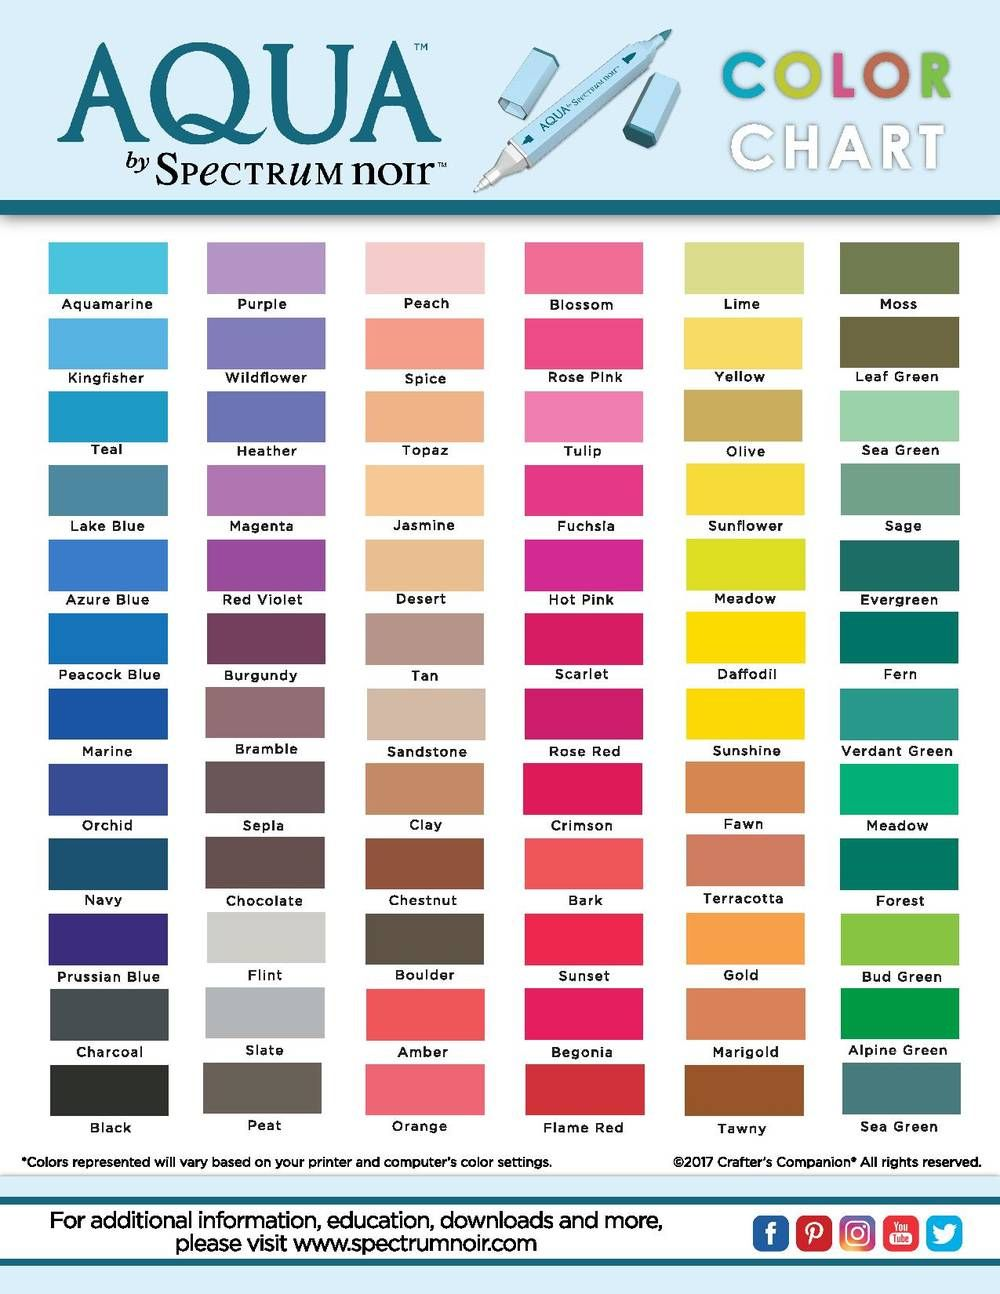 photograph about Printable Color Chart called Totally free Printable Spectrum Noir Shade Charts Elements in direction of recognize